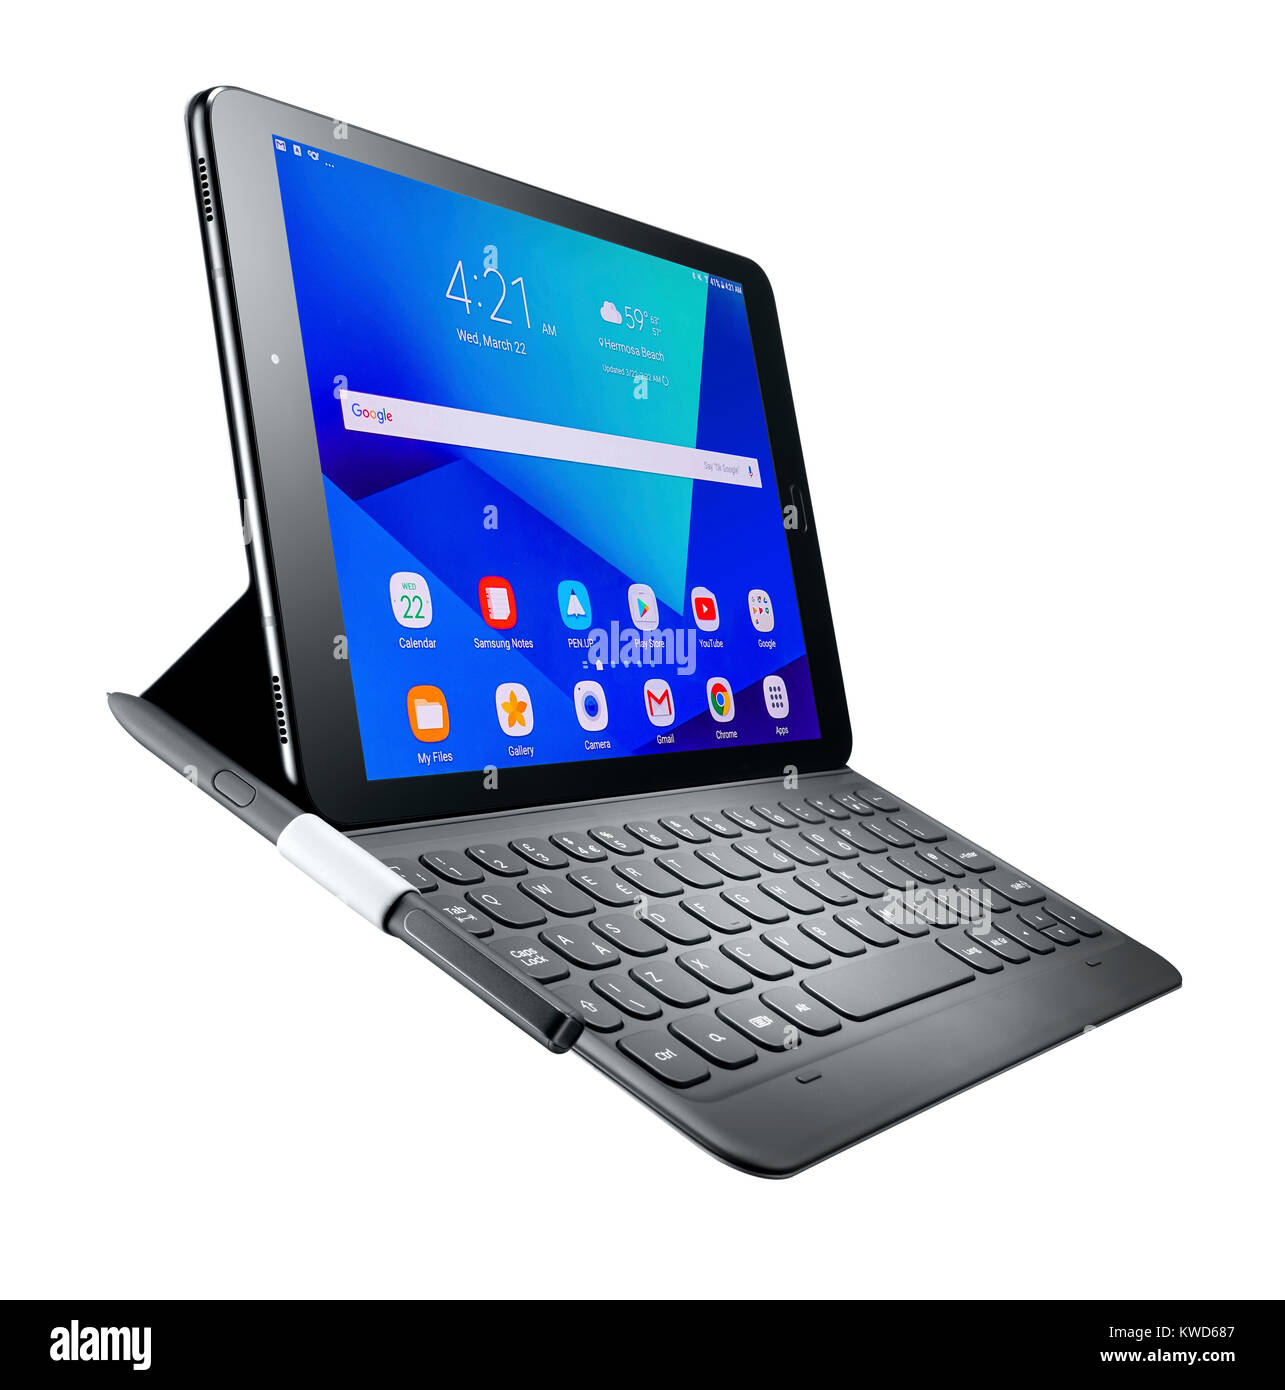 A dynamic shot of a tablet, pen and keyboard - Stock Image